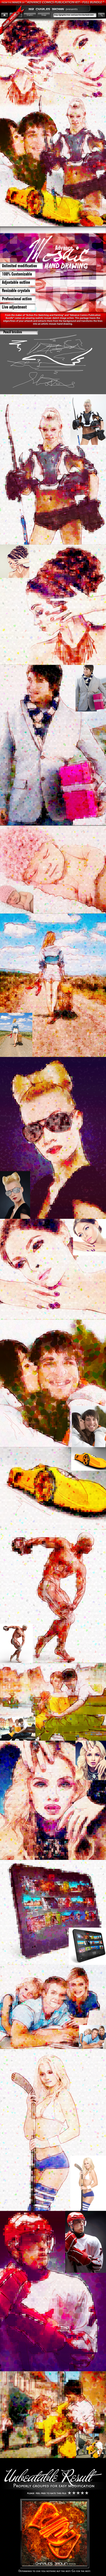 Photo Mosaic Photo Graphics, Designs & Templates